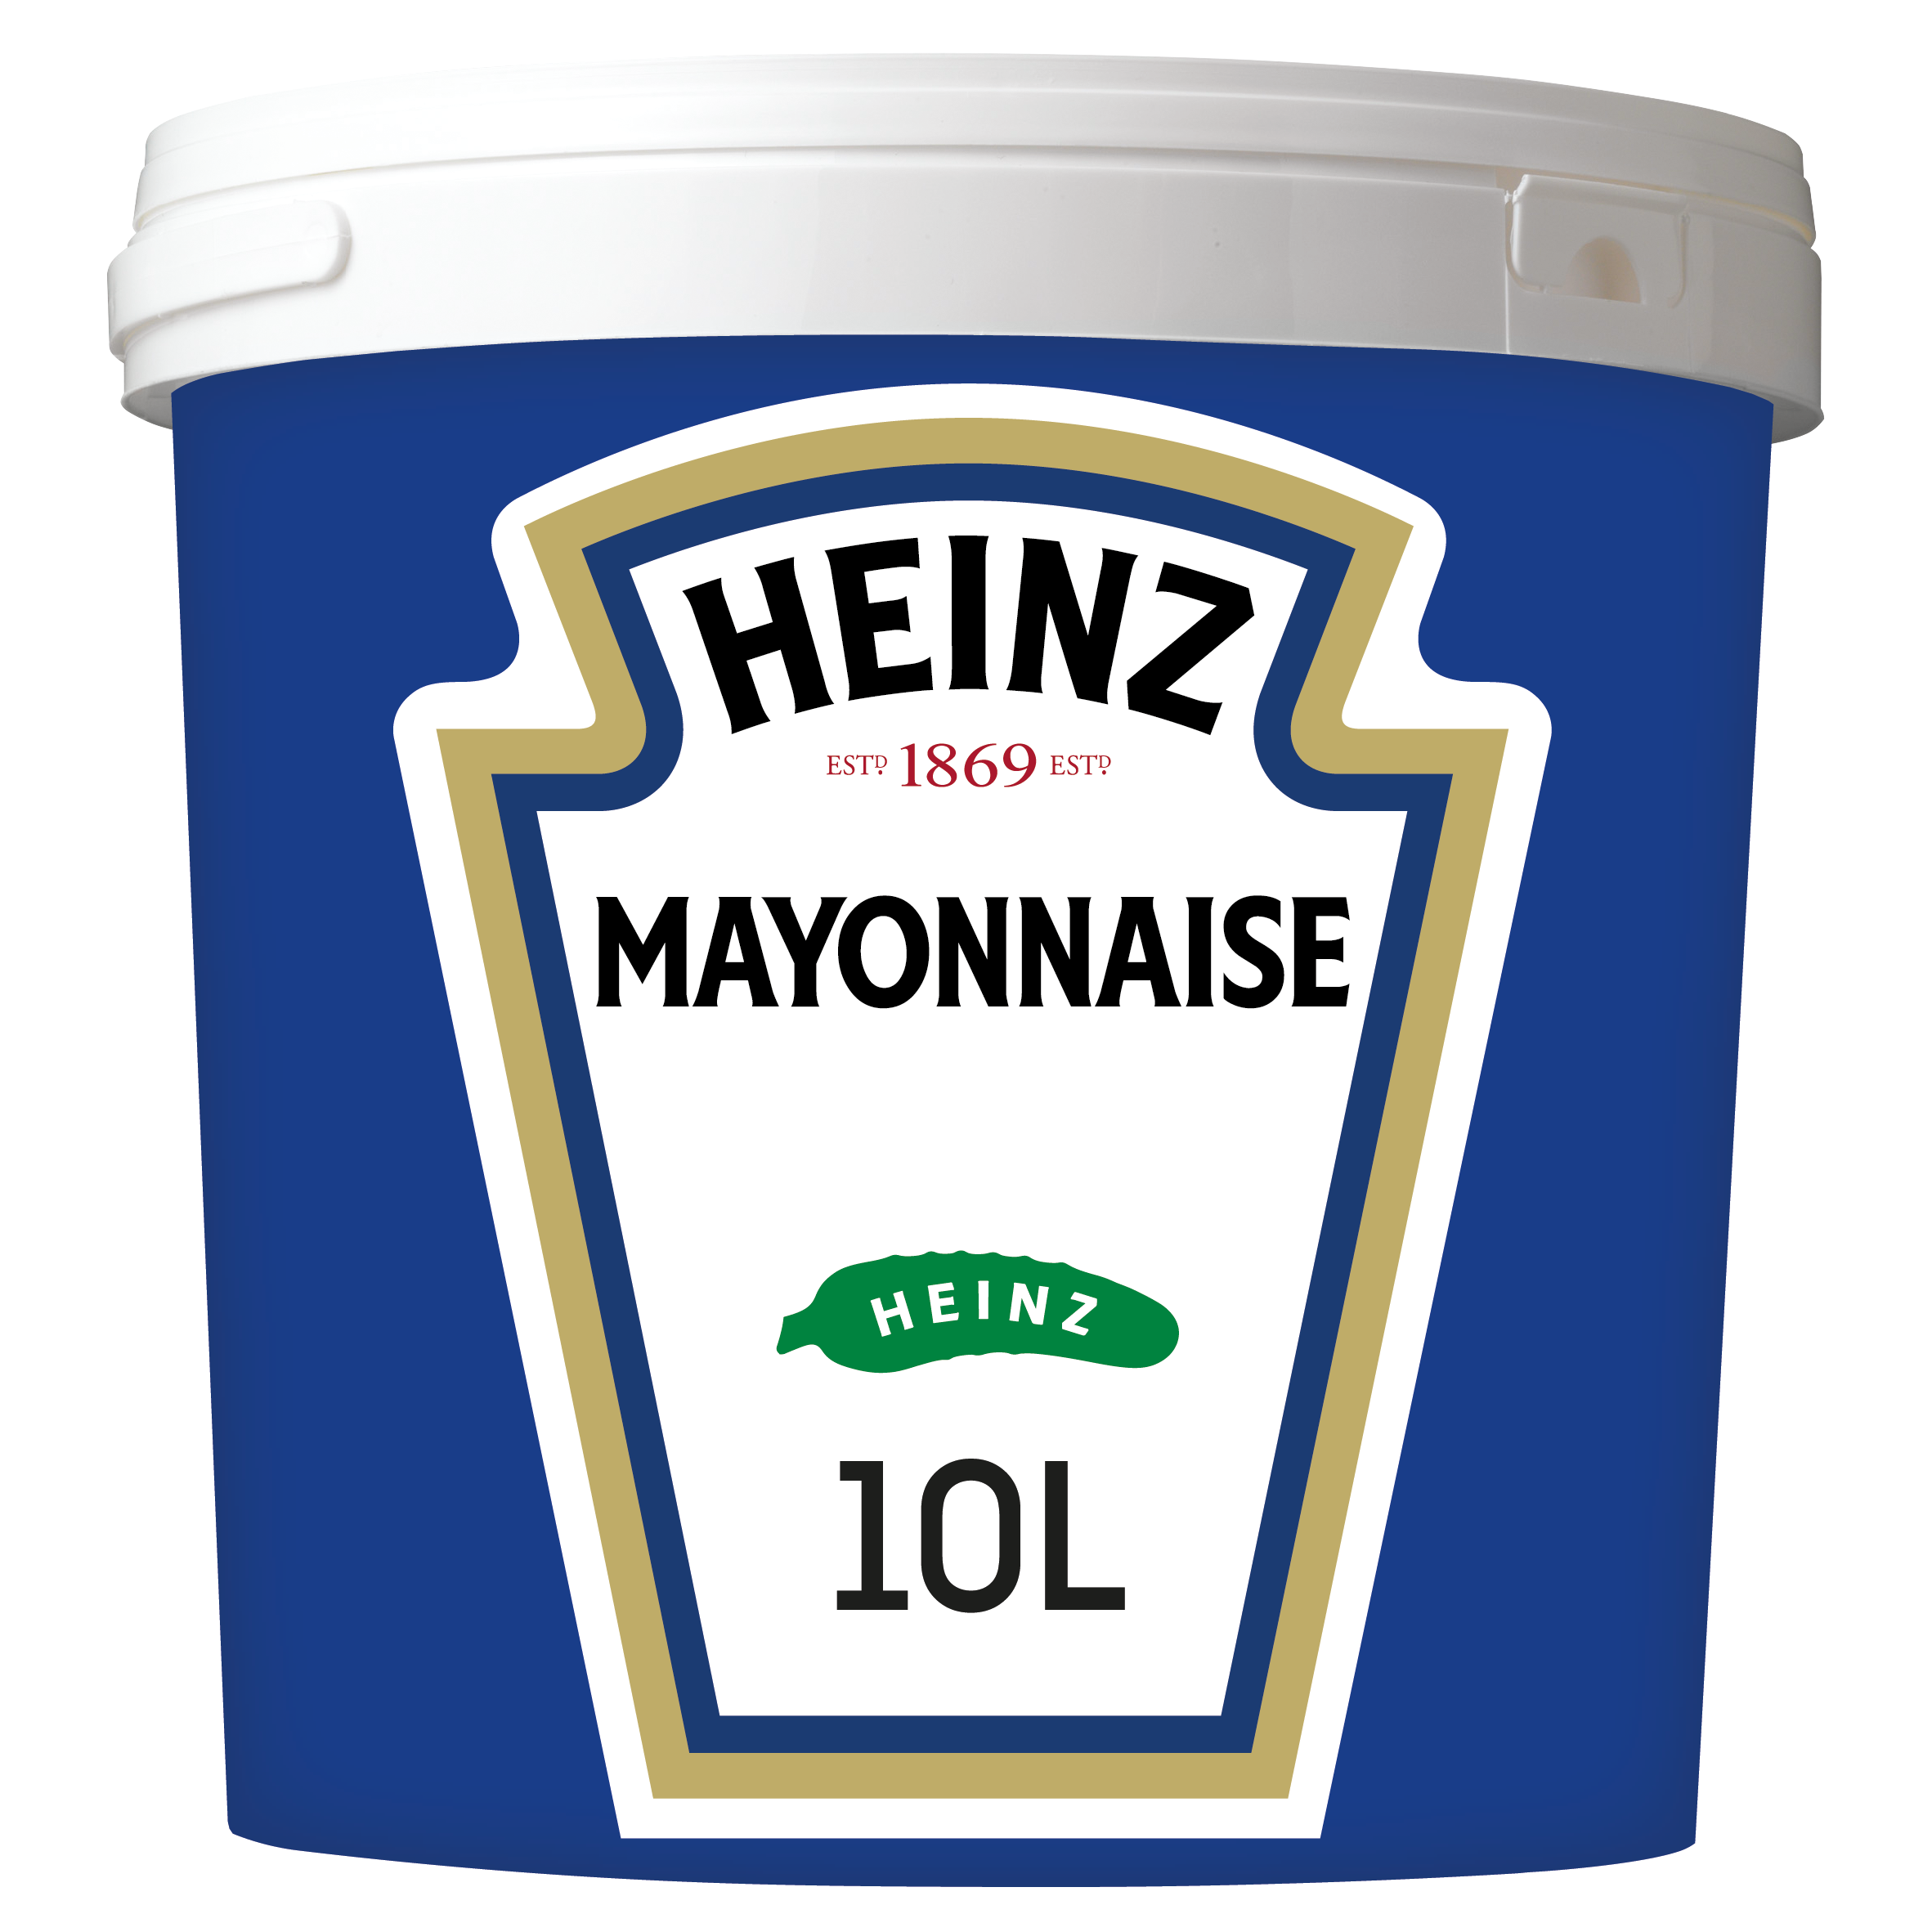 Heinz Mayonnaise 10L Pail image